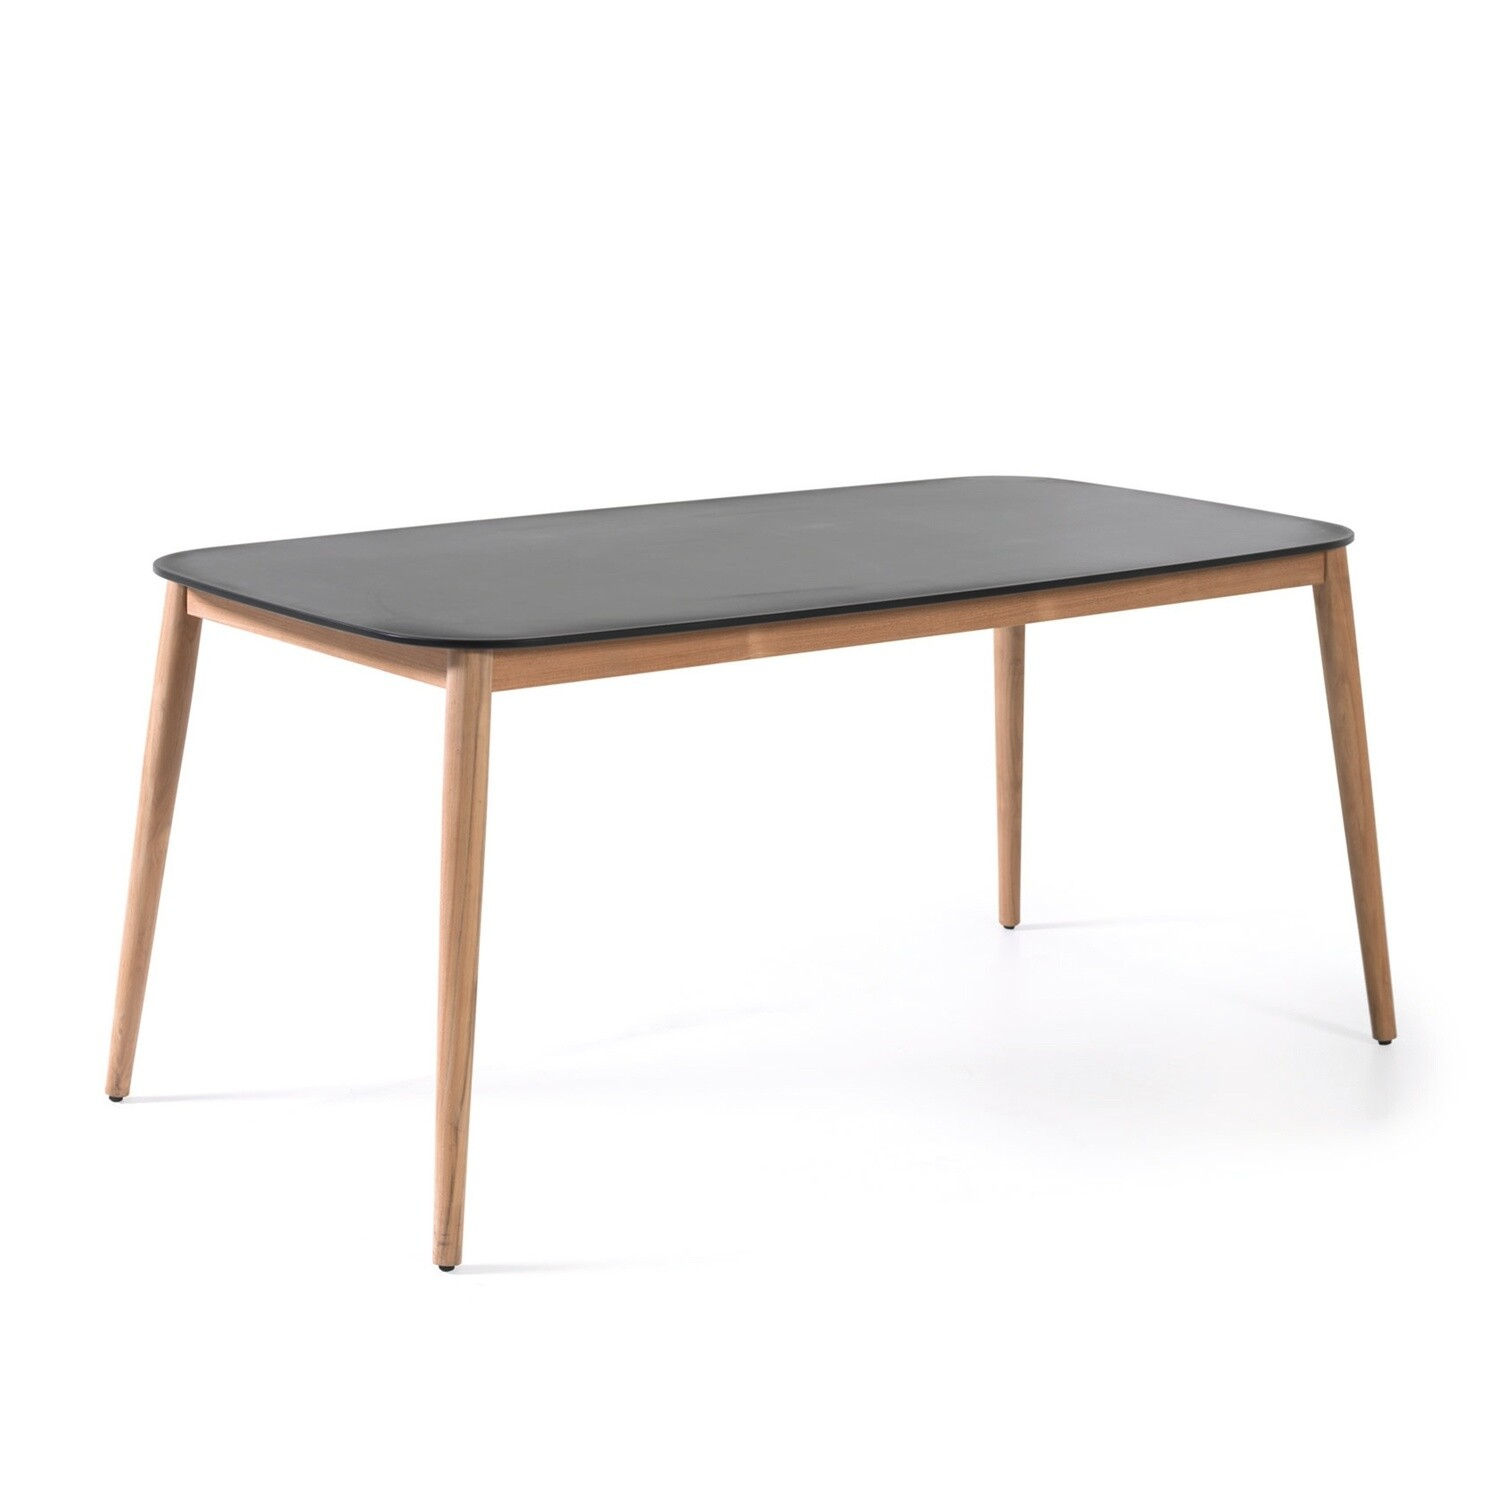 HELSINKI RECTANGULAR TABLE